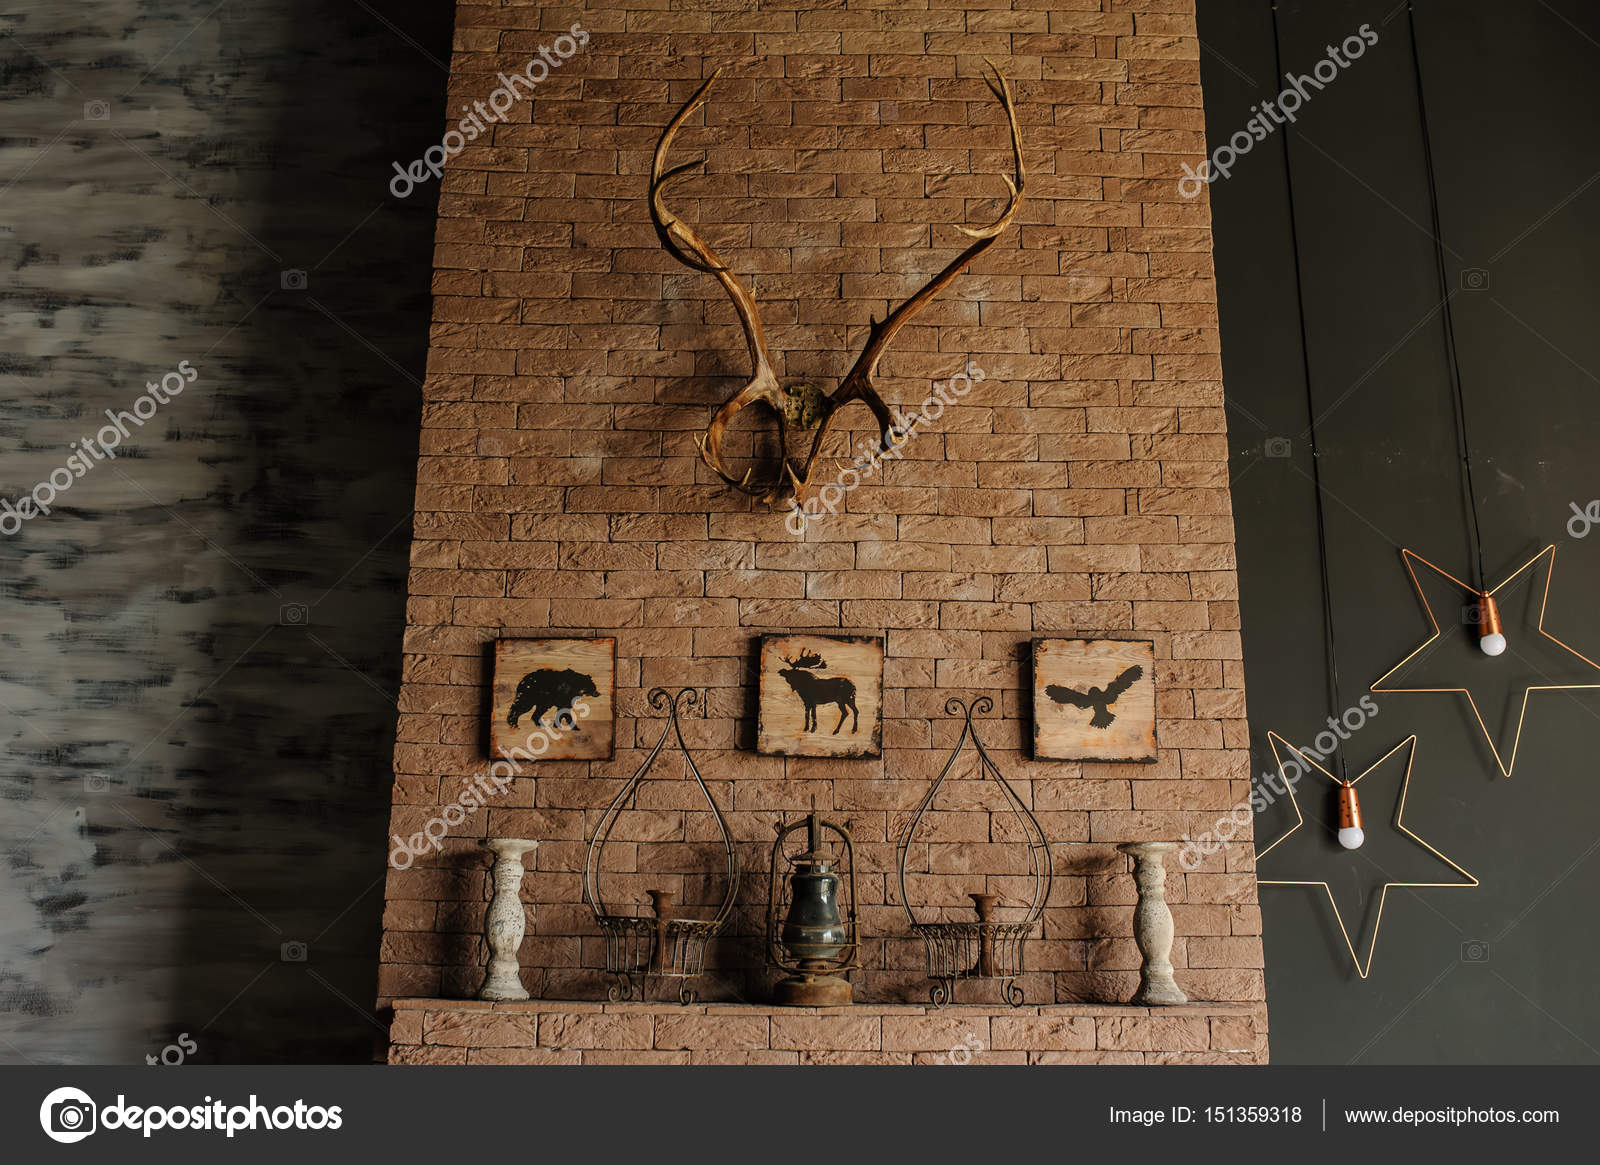 Hirschgeweih Wand Old Bricks Wall With Deer Antlers Stock Photo Med Photo Studio